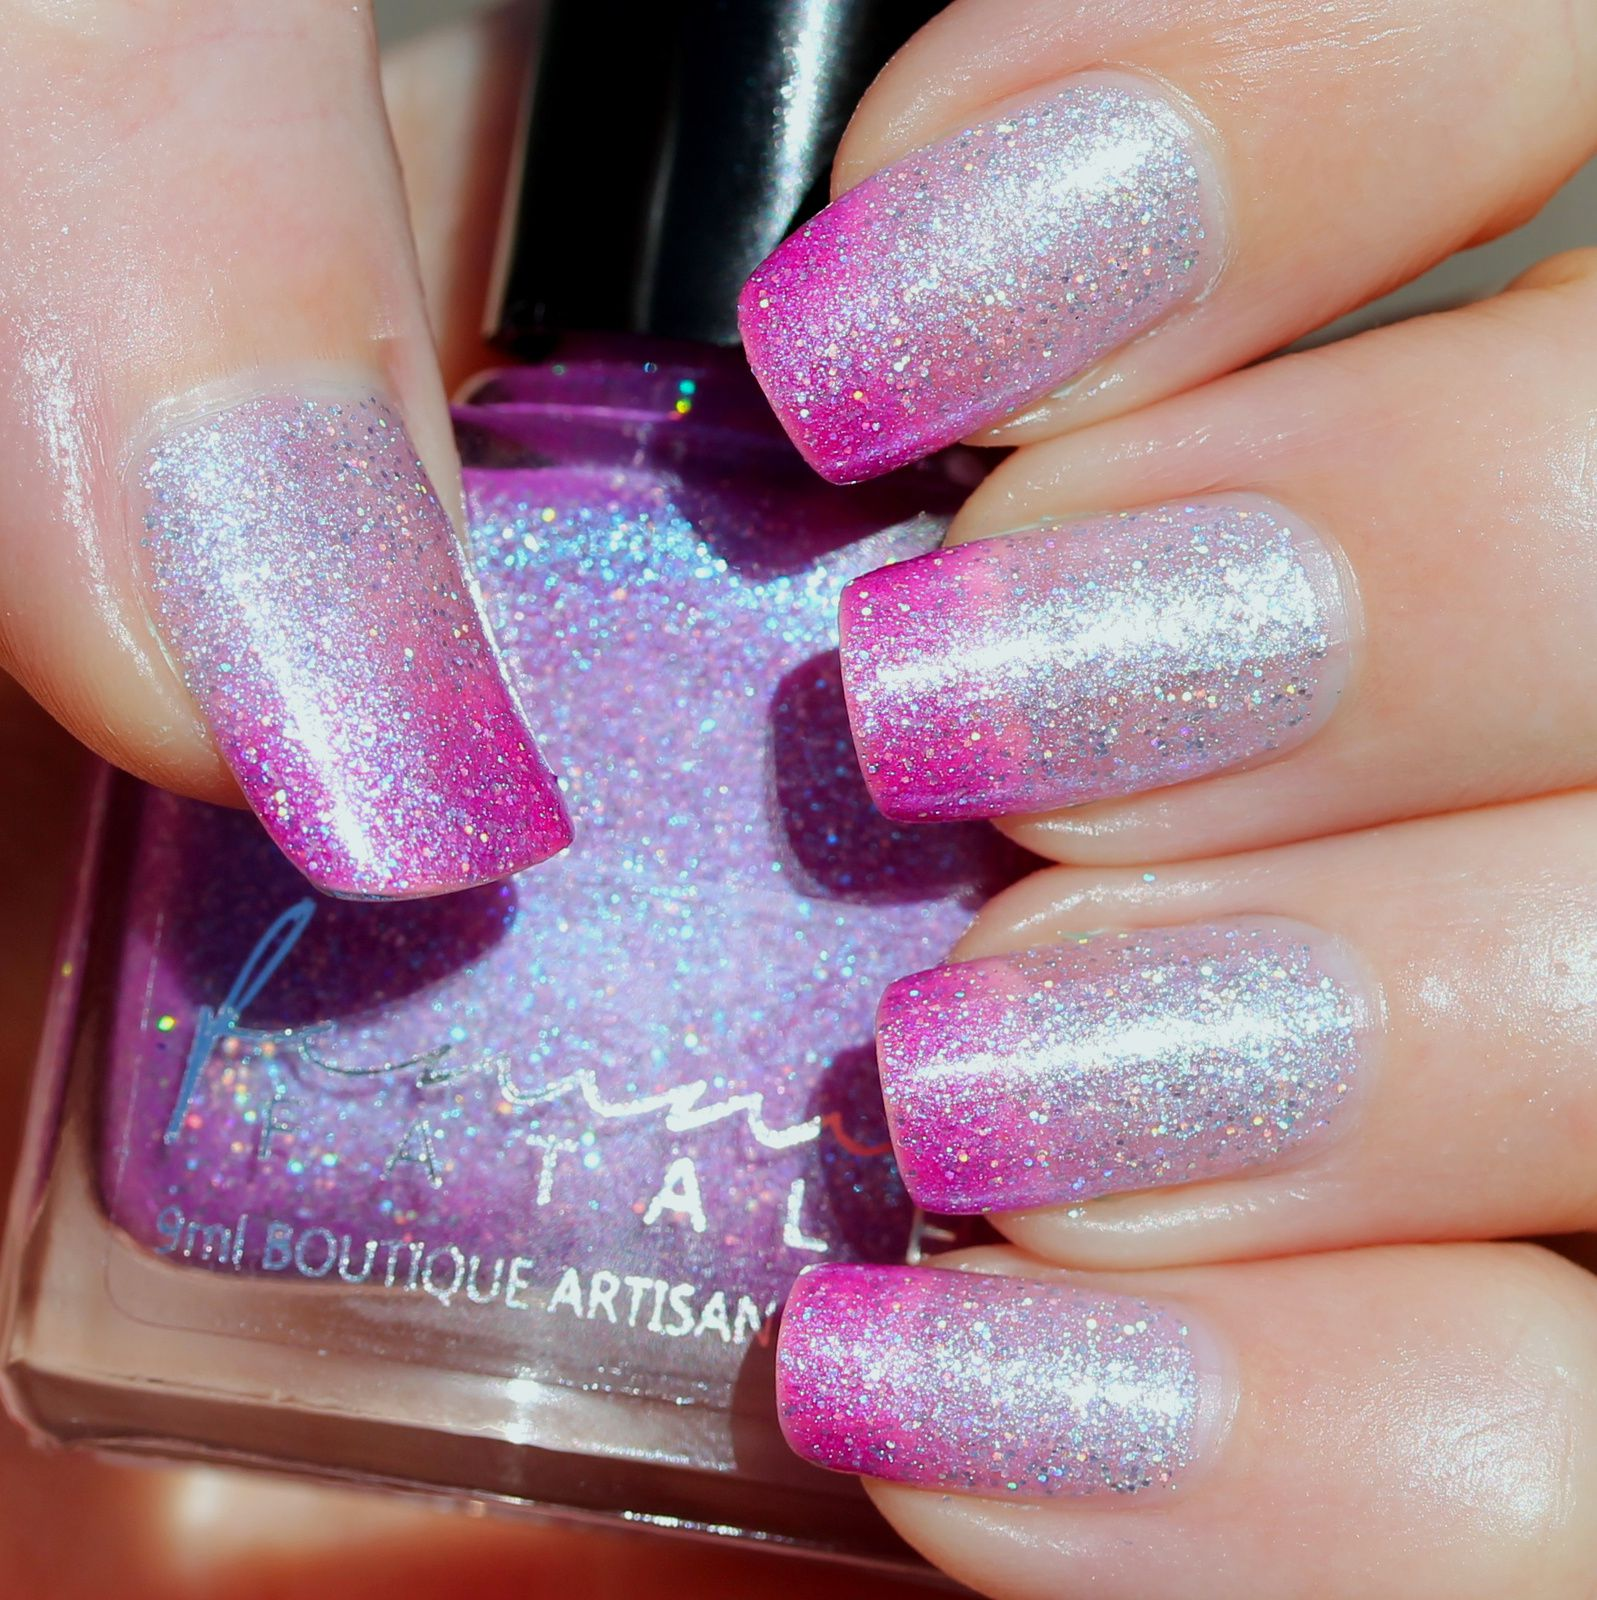 Femme Fatale Cosmetics Who is Fairest of Them All? (2 coats, no top coat)